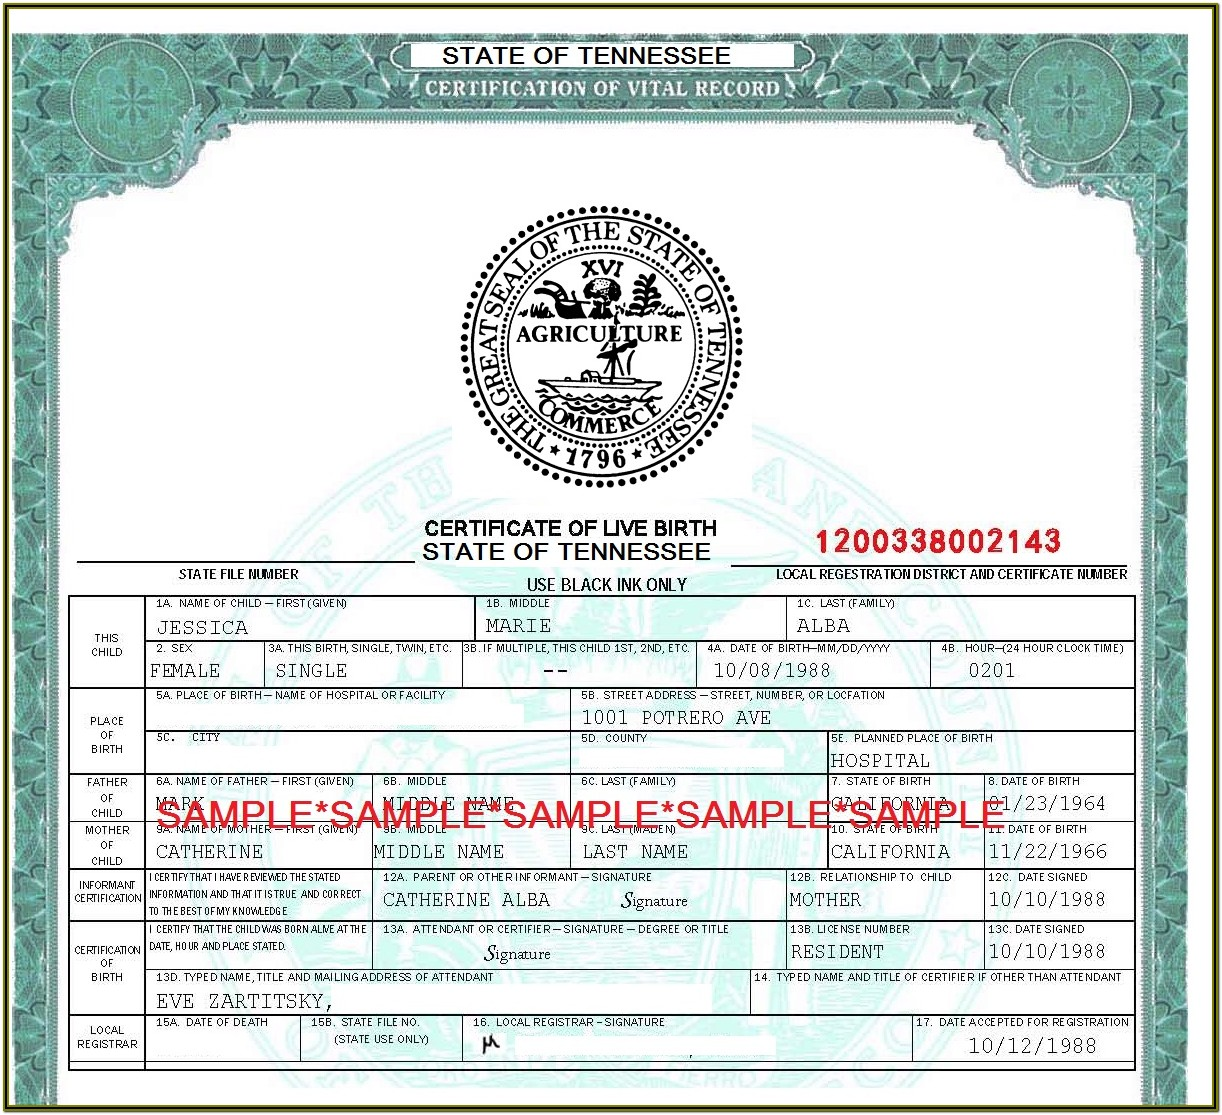 Tennessee Birth Certificate Application Form